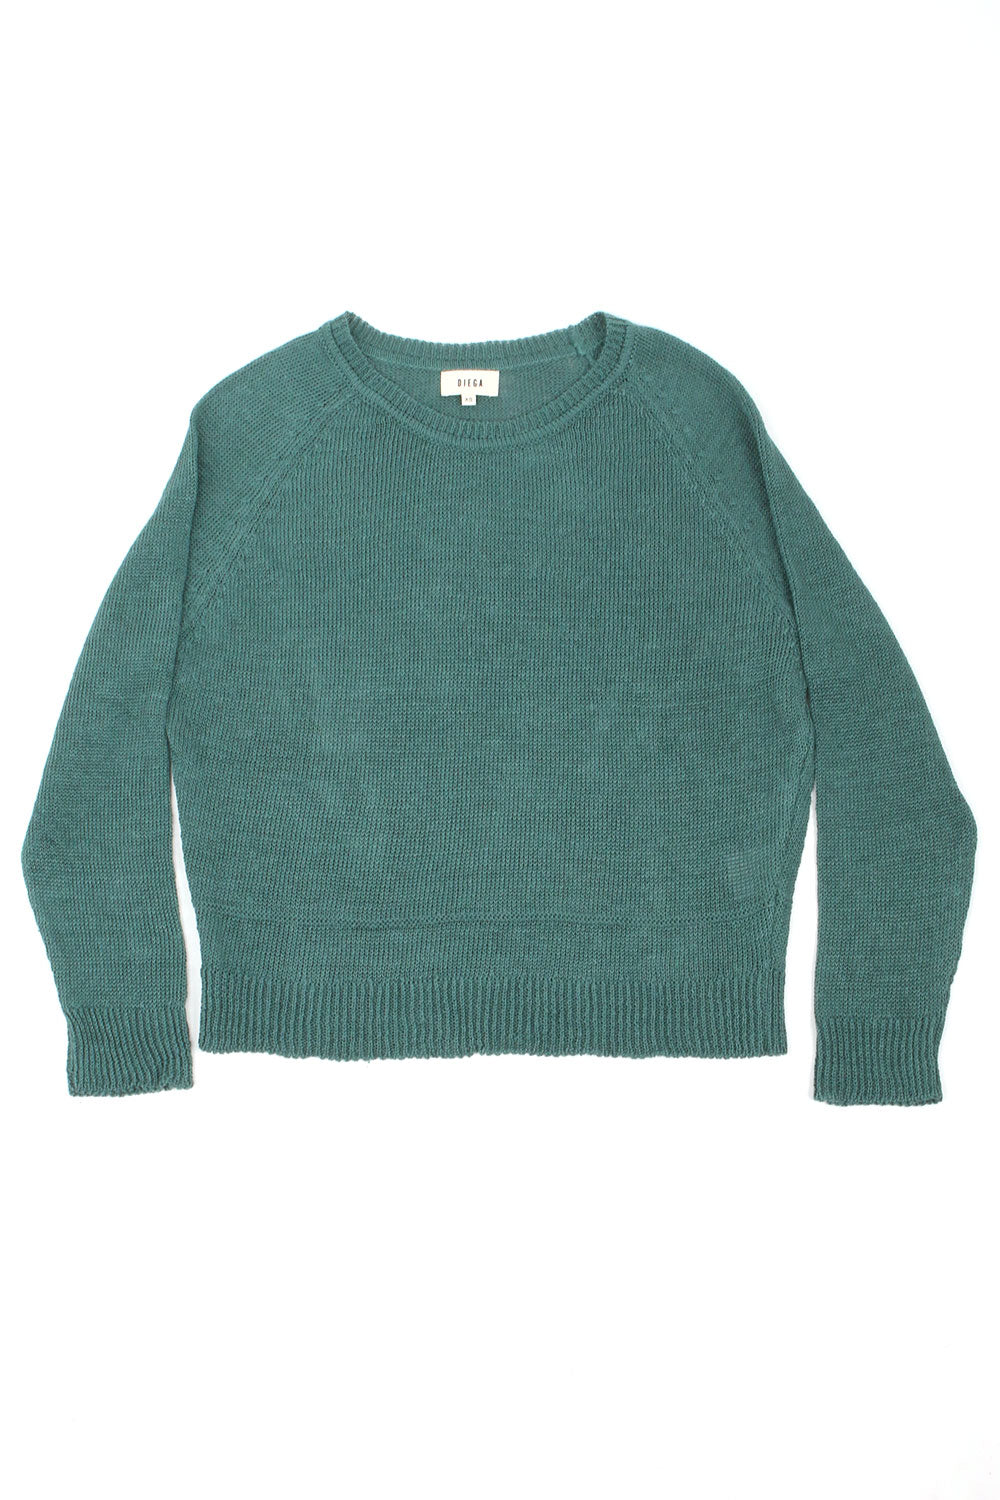 Pumparo Sage Knit